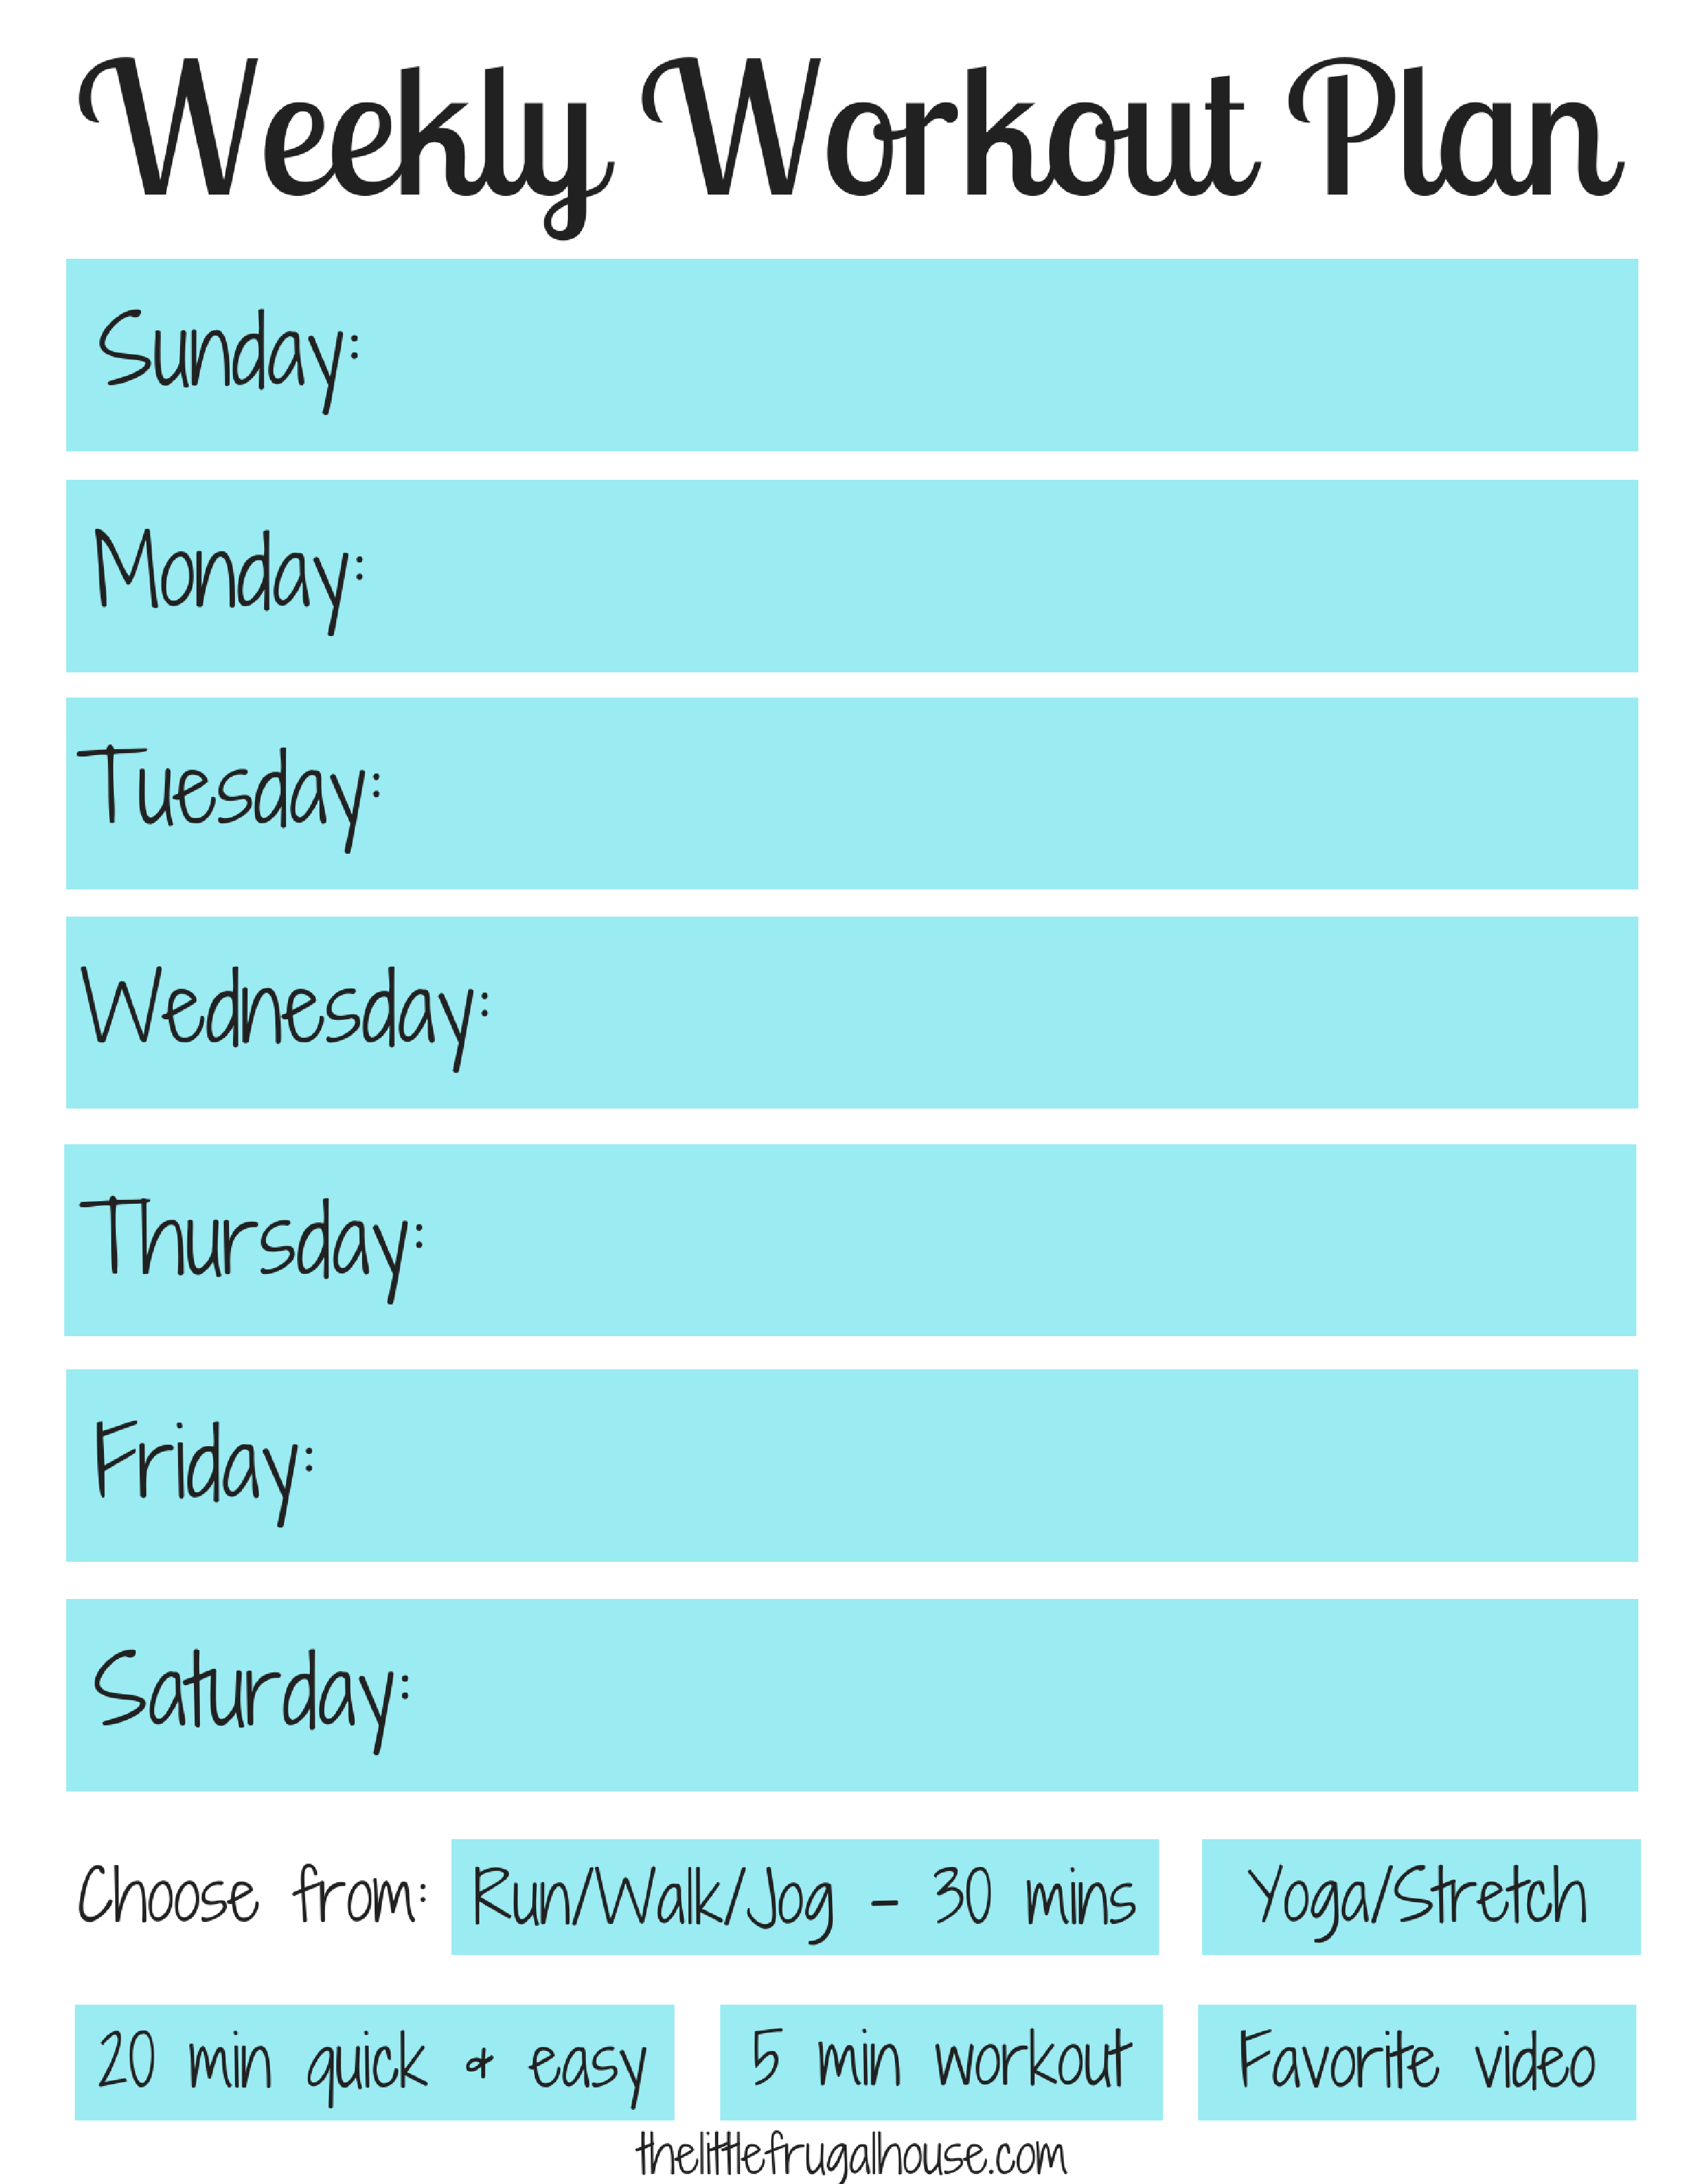 Weekly Workout Plan - Free Workout Planner Printable - The Little - Free Printable Workout Plans